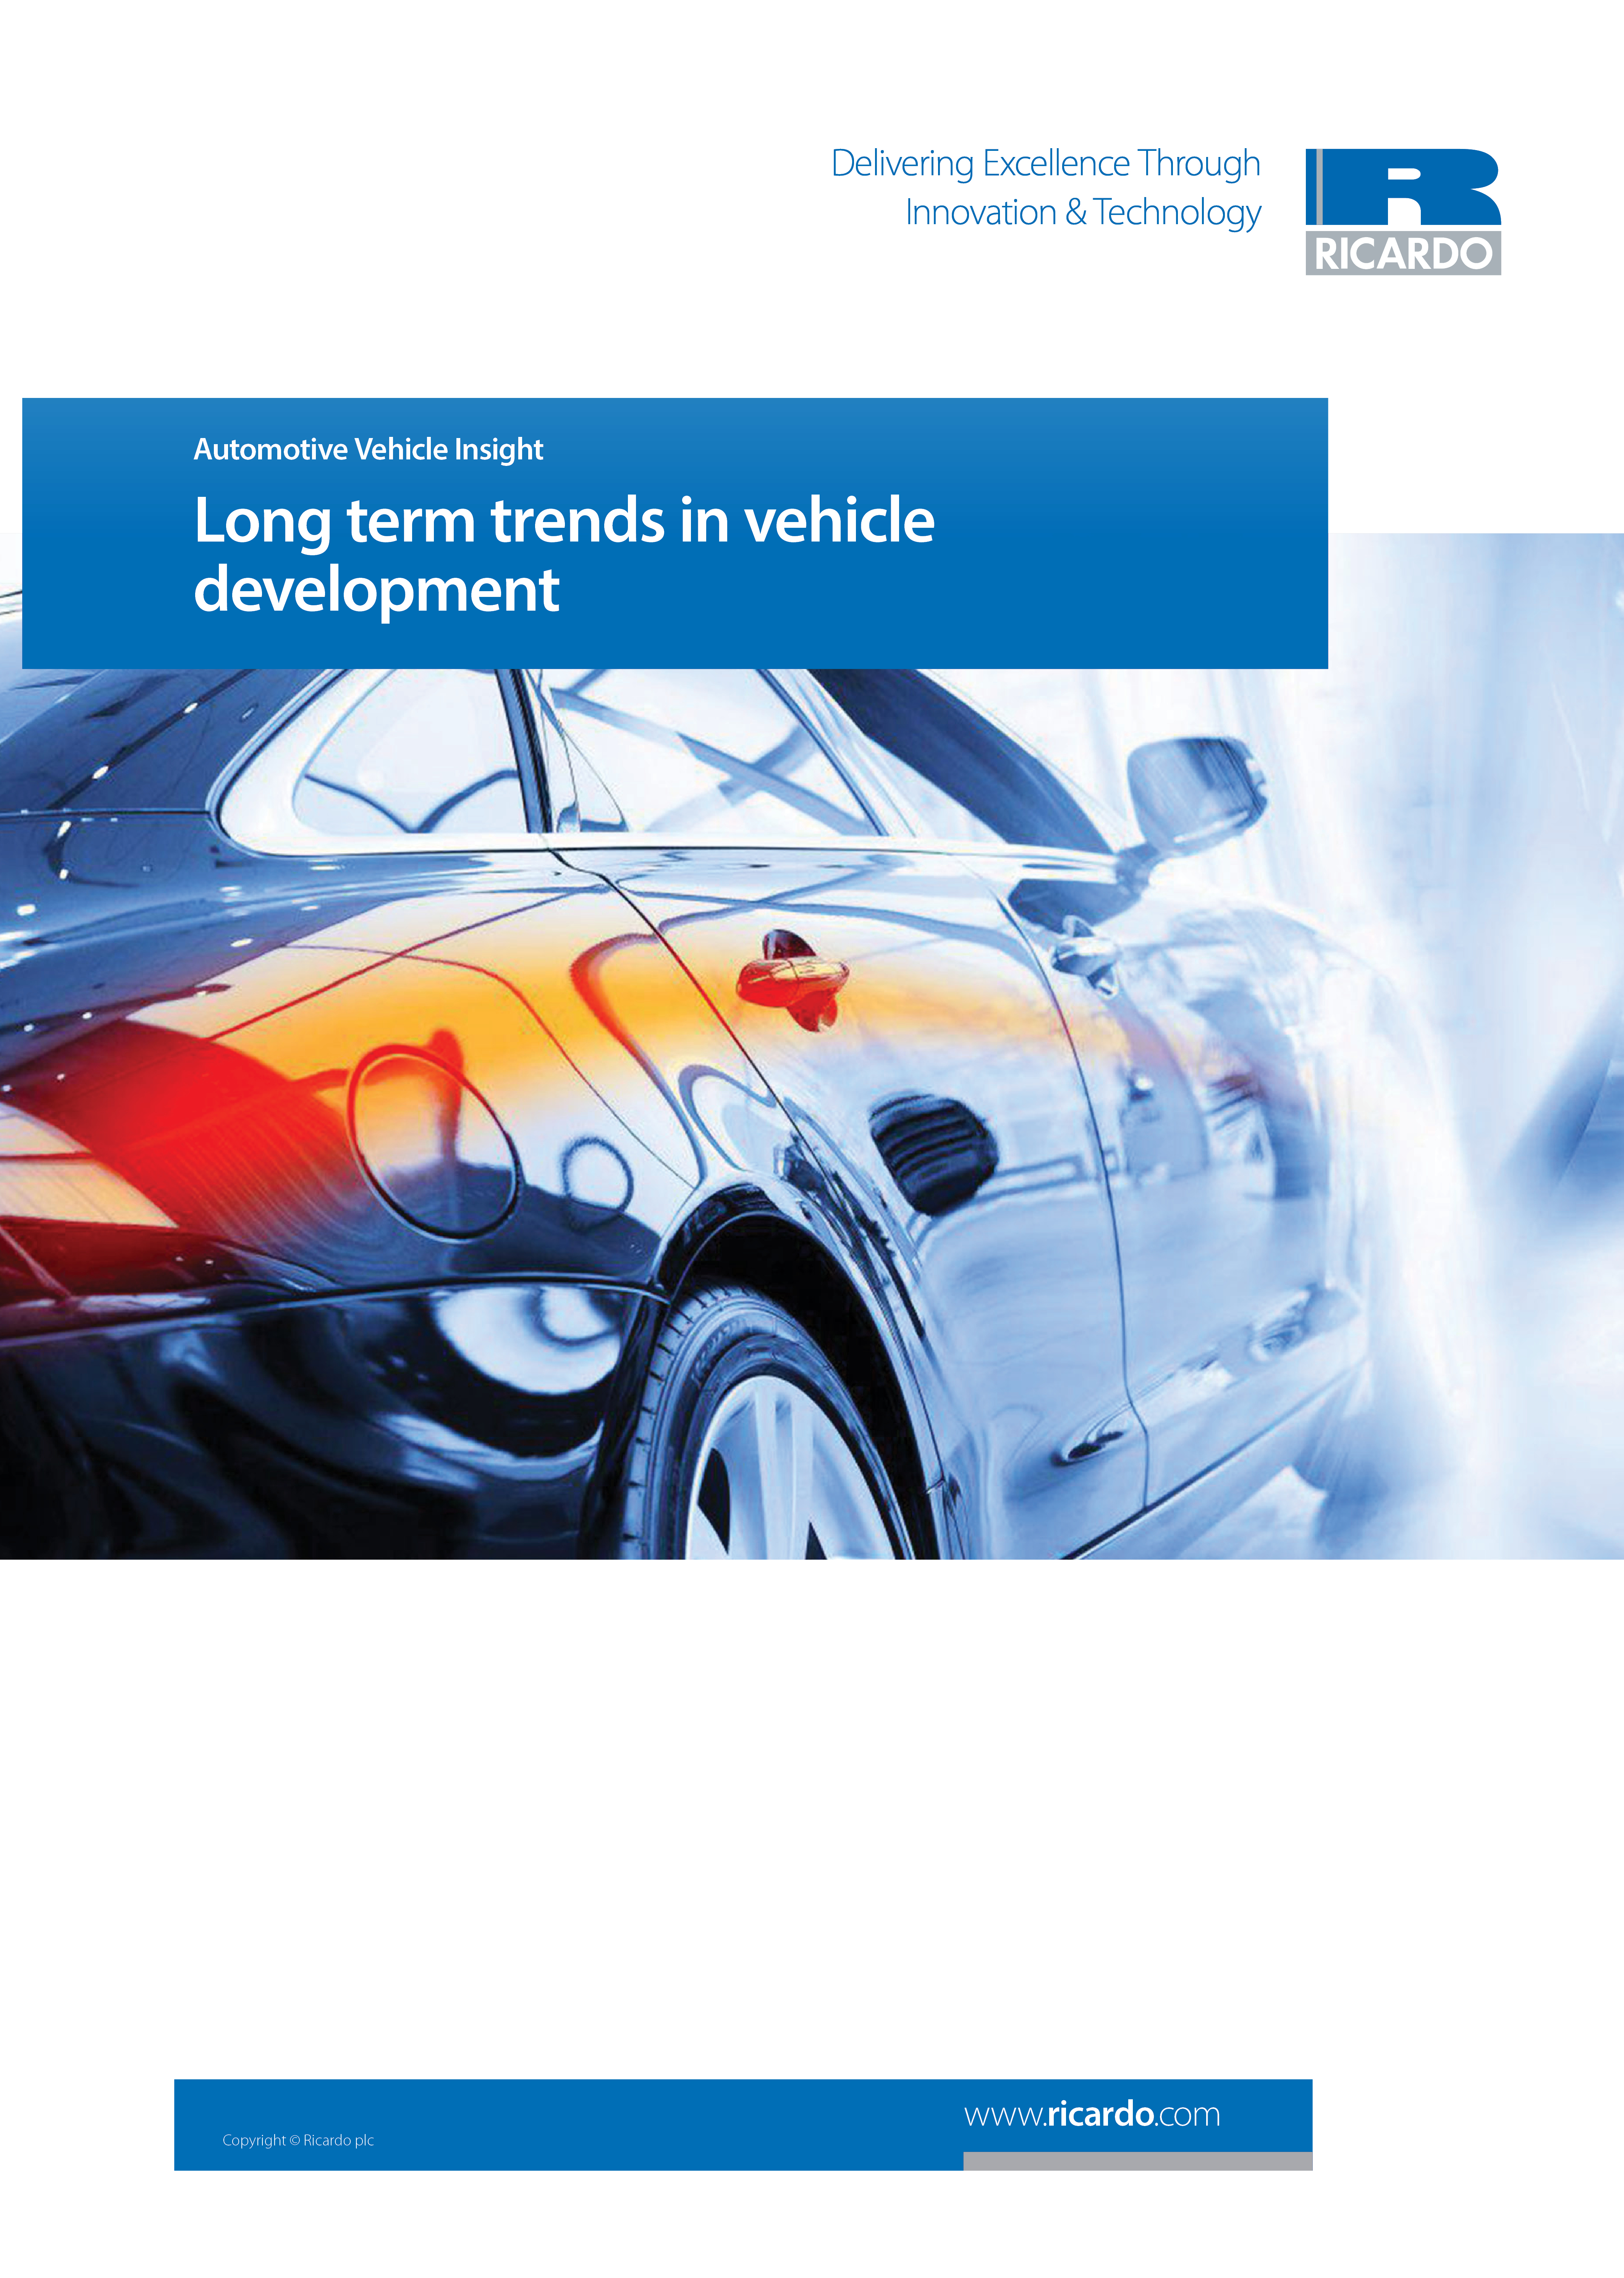 Long term trends in vehicle development